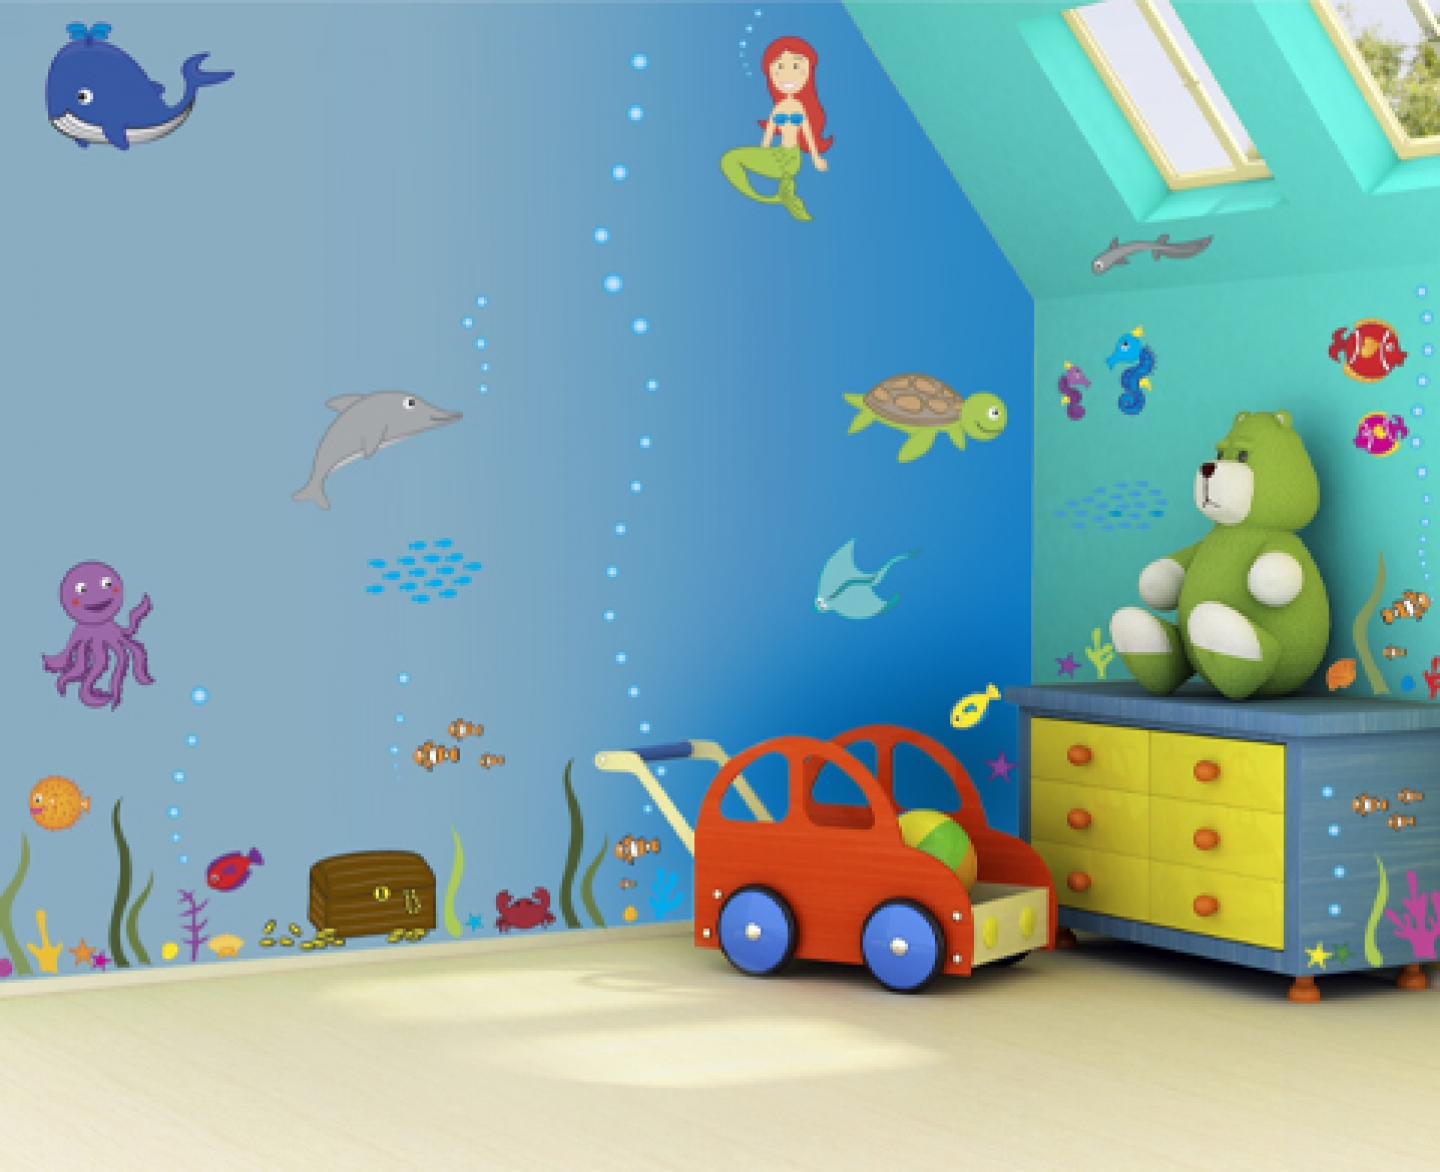 Wall Art Décor Ideas for Kids Room | My Decorative